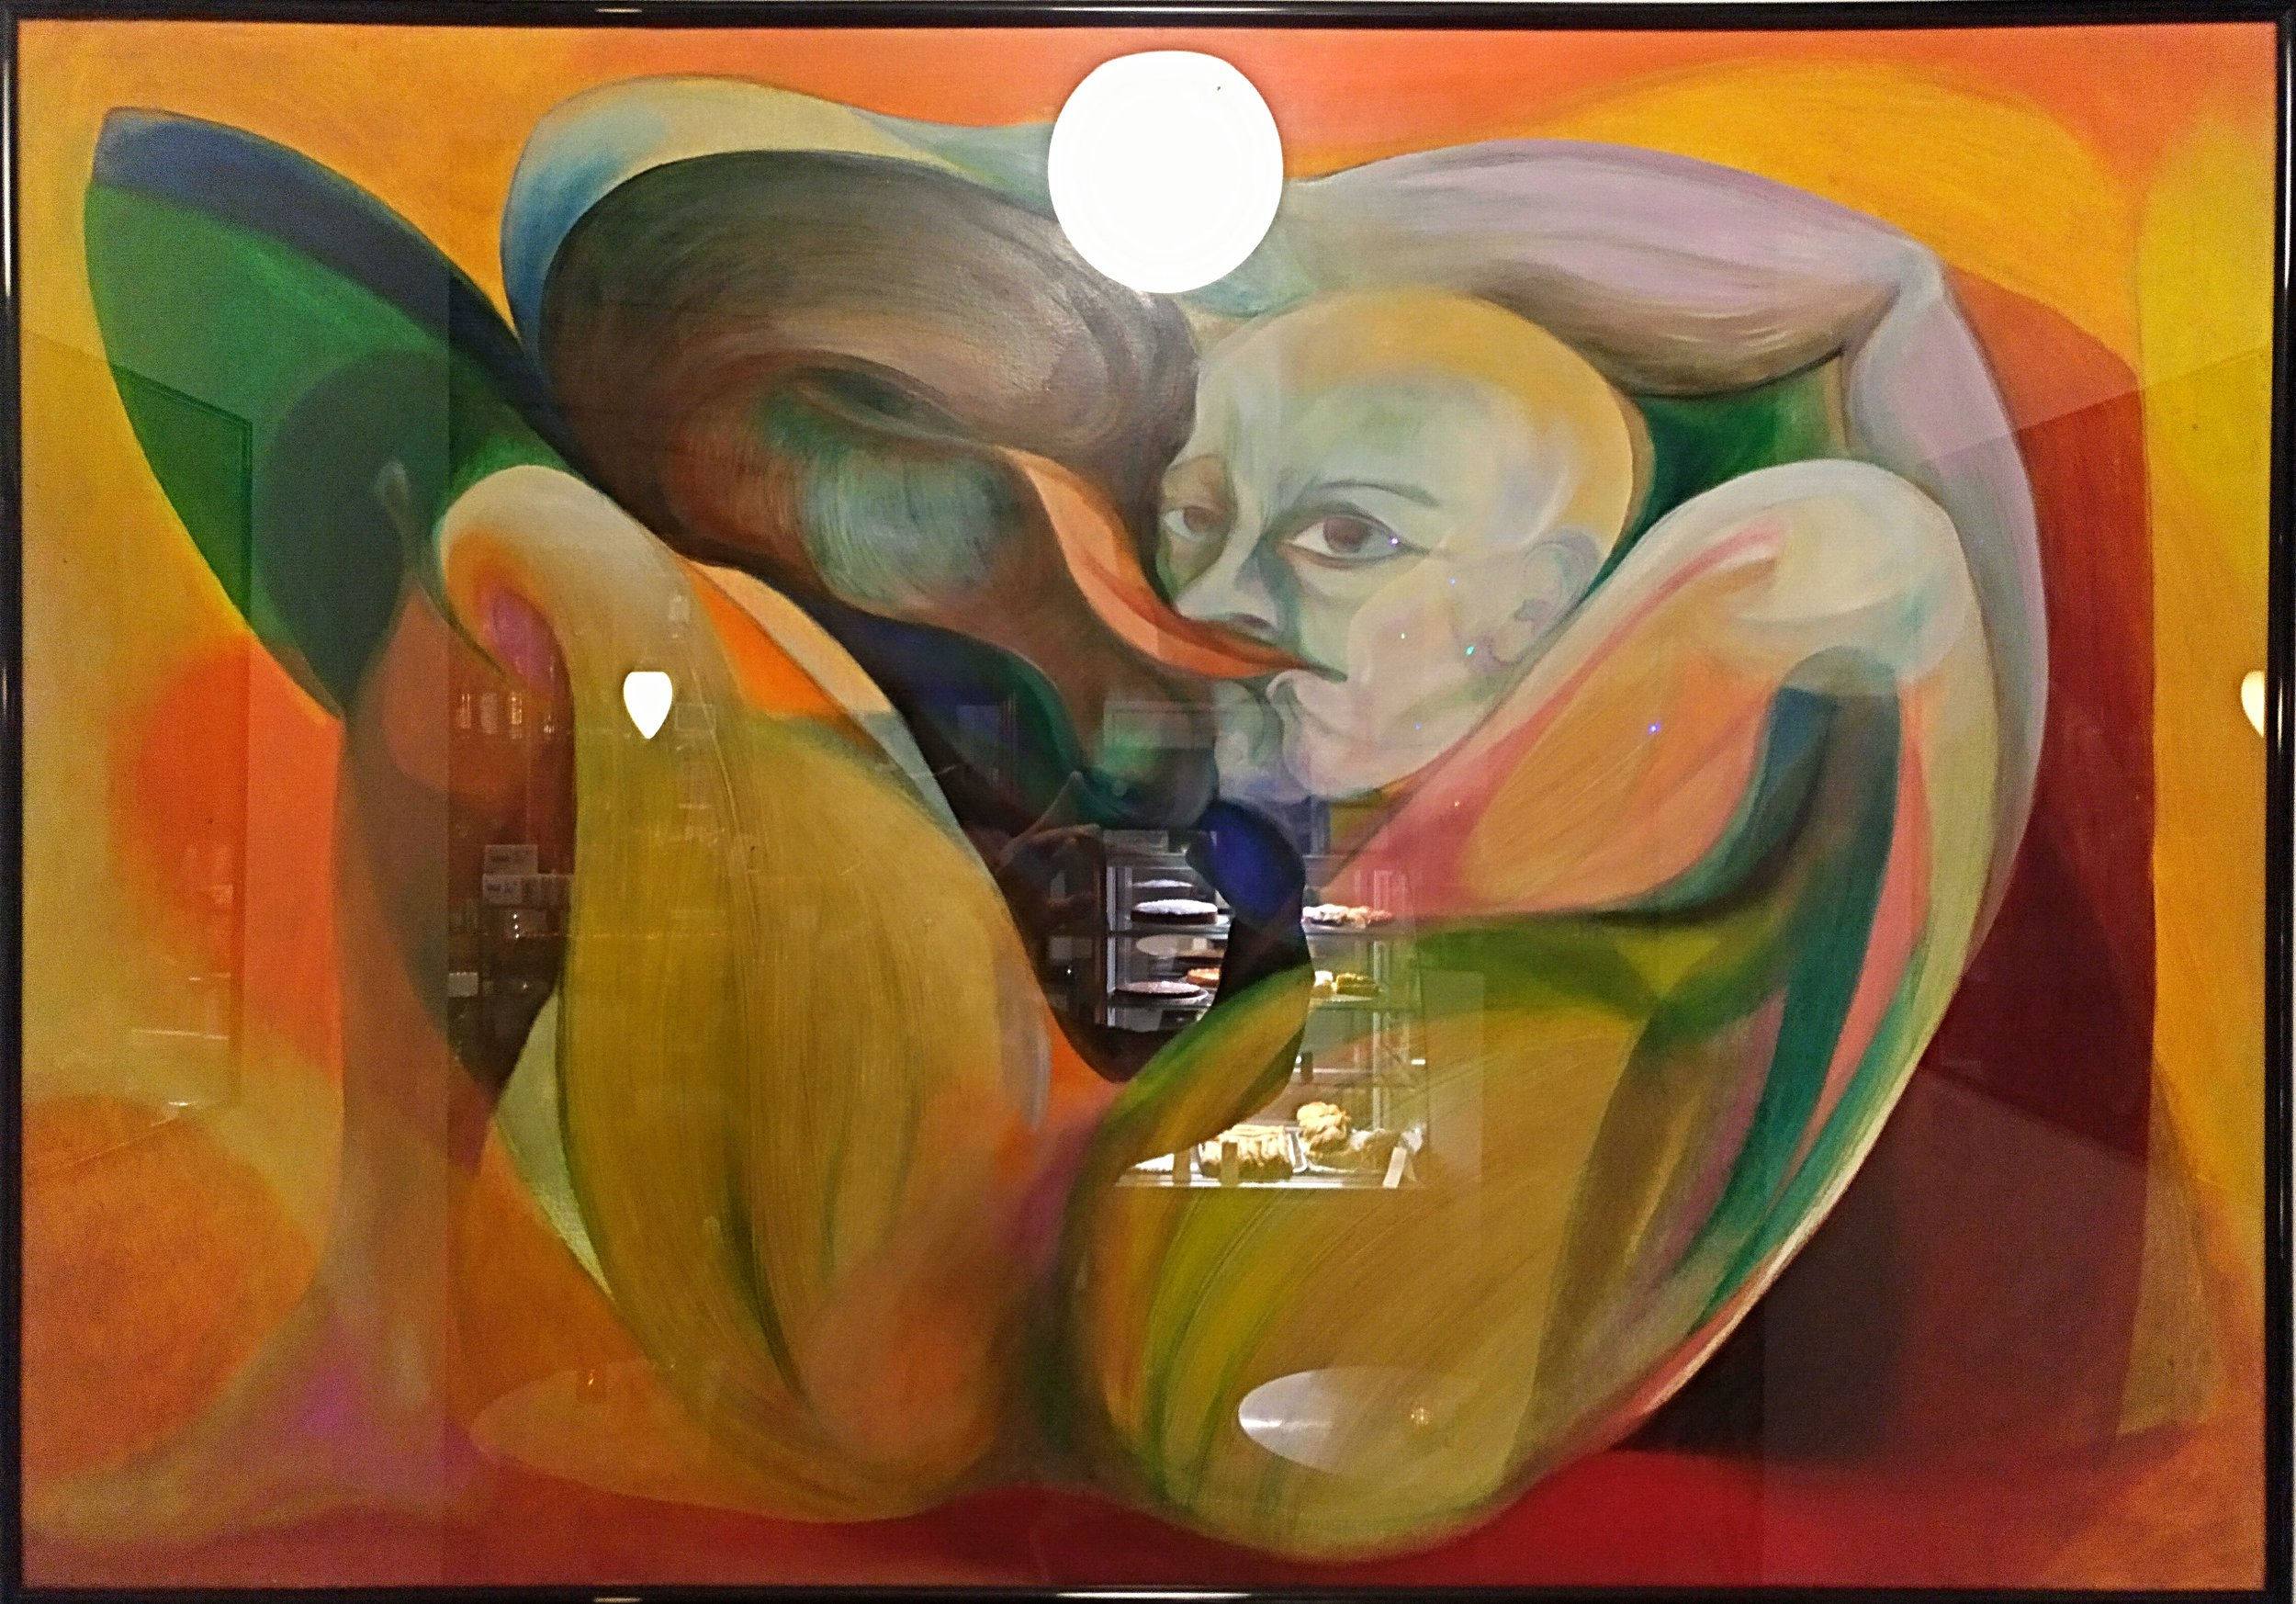 Love between a man and a bird, as shown in Heidelberg, Galerie YilliY. 2016.